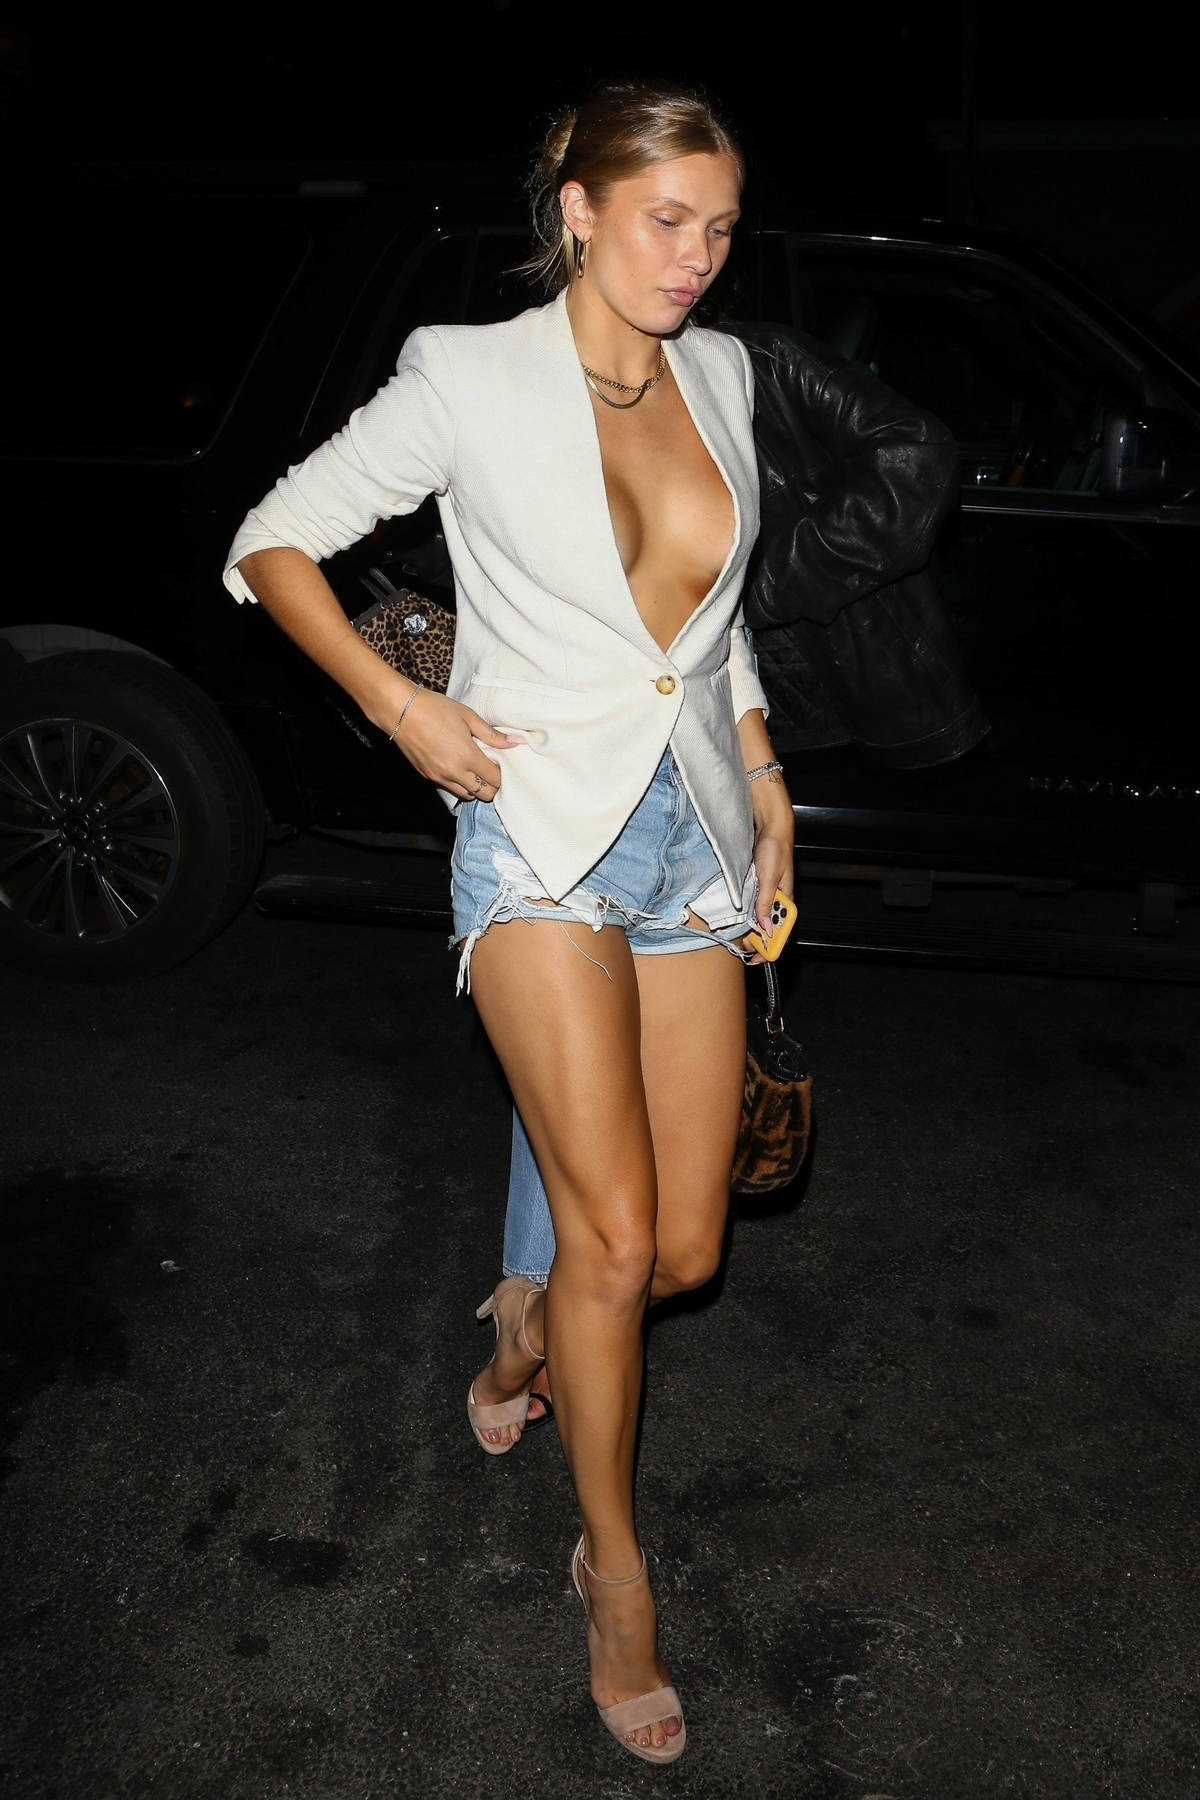 Josie Canseco displays her toned and tanned legs arriving at a launch party at Catch LA in West Hollywood, California